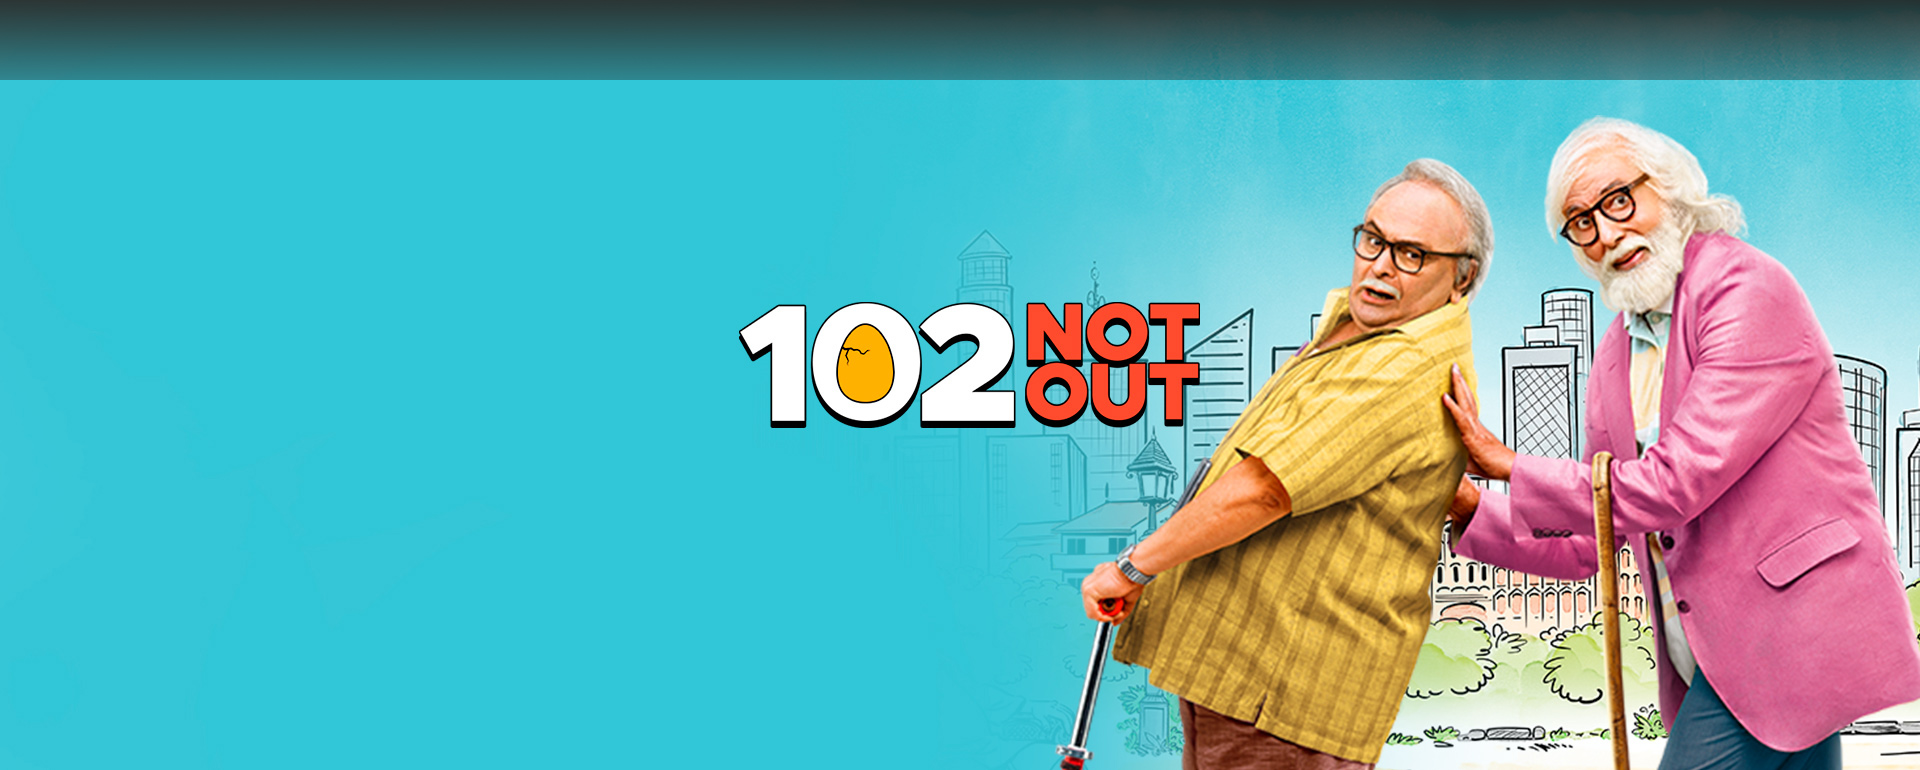 102 NOT OUT